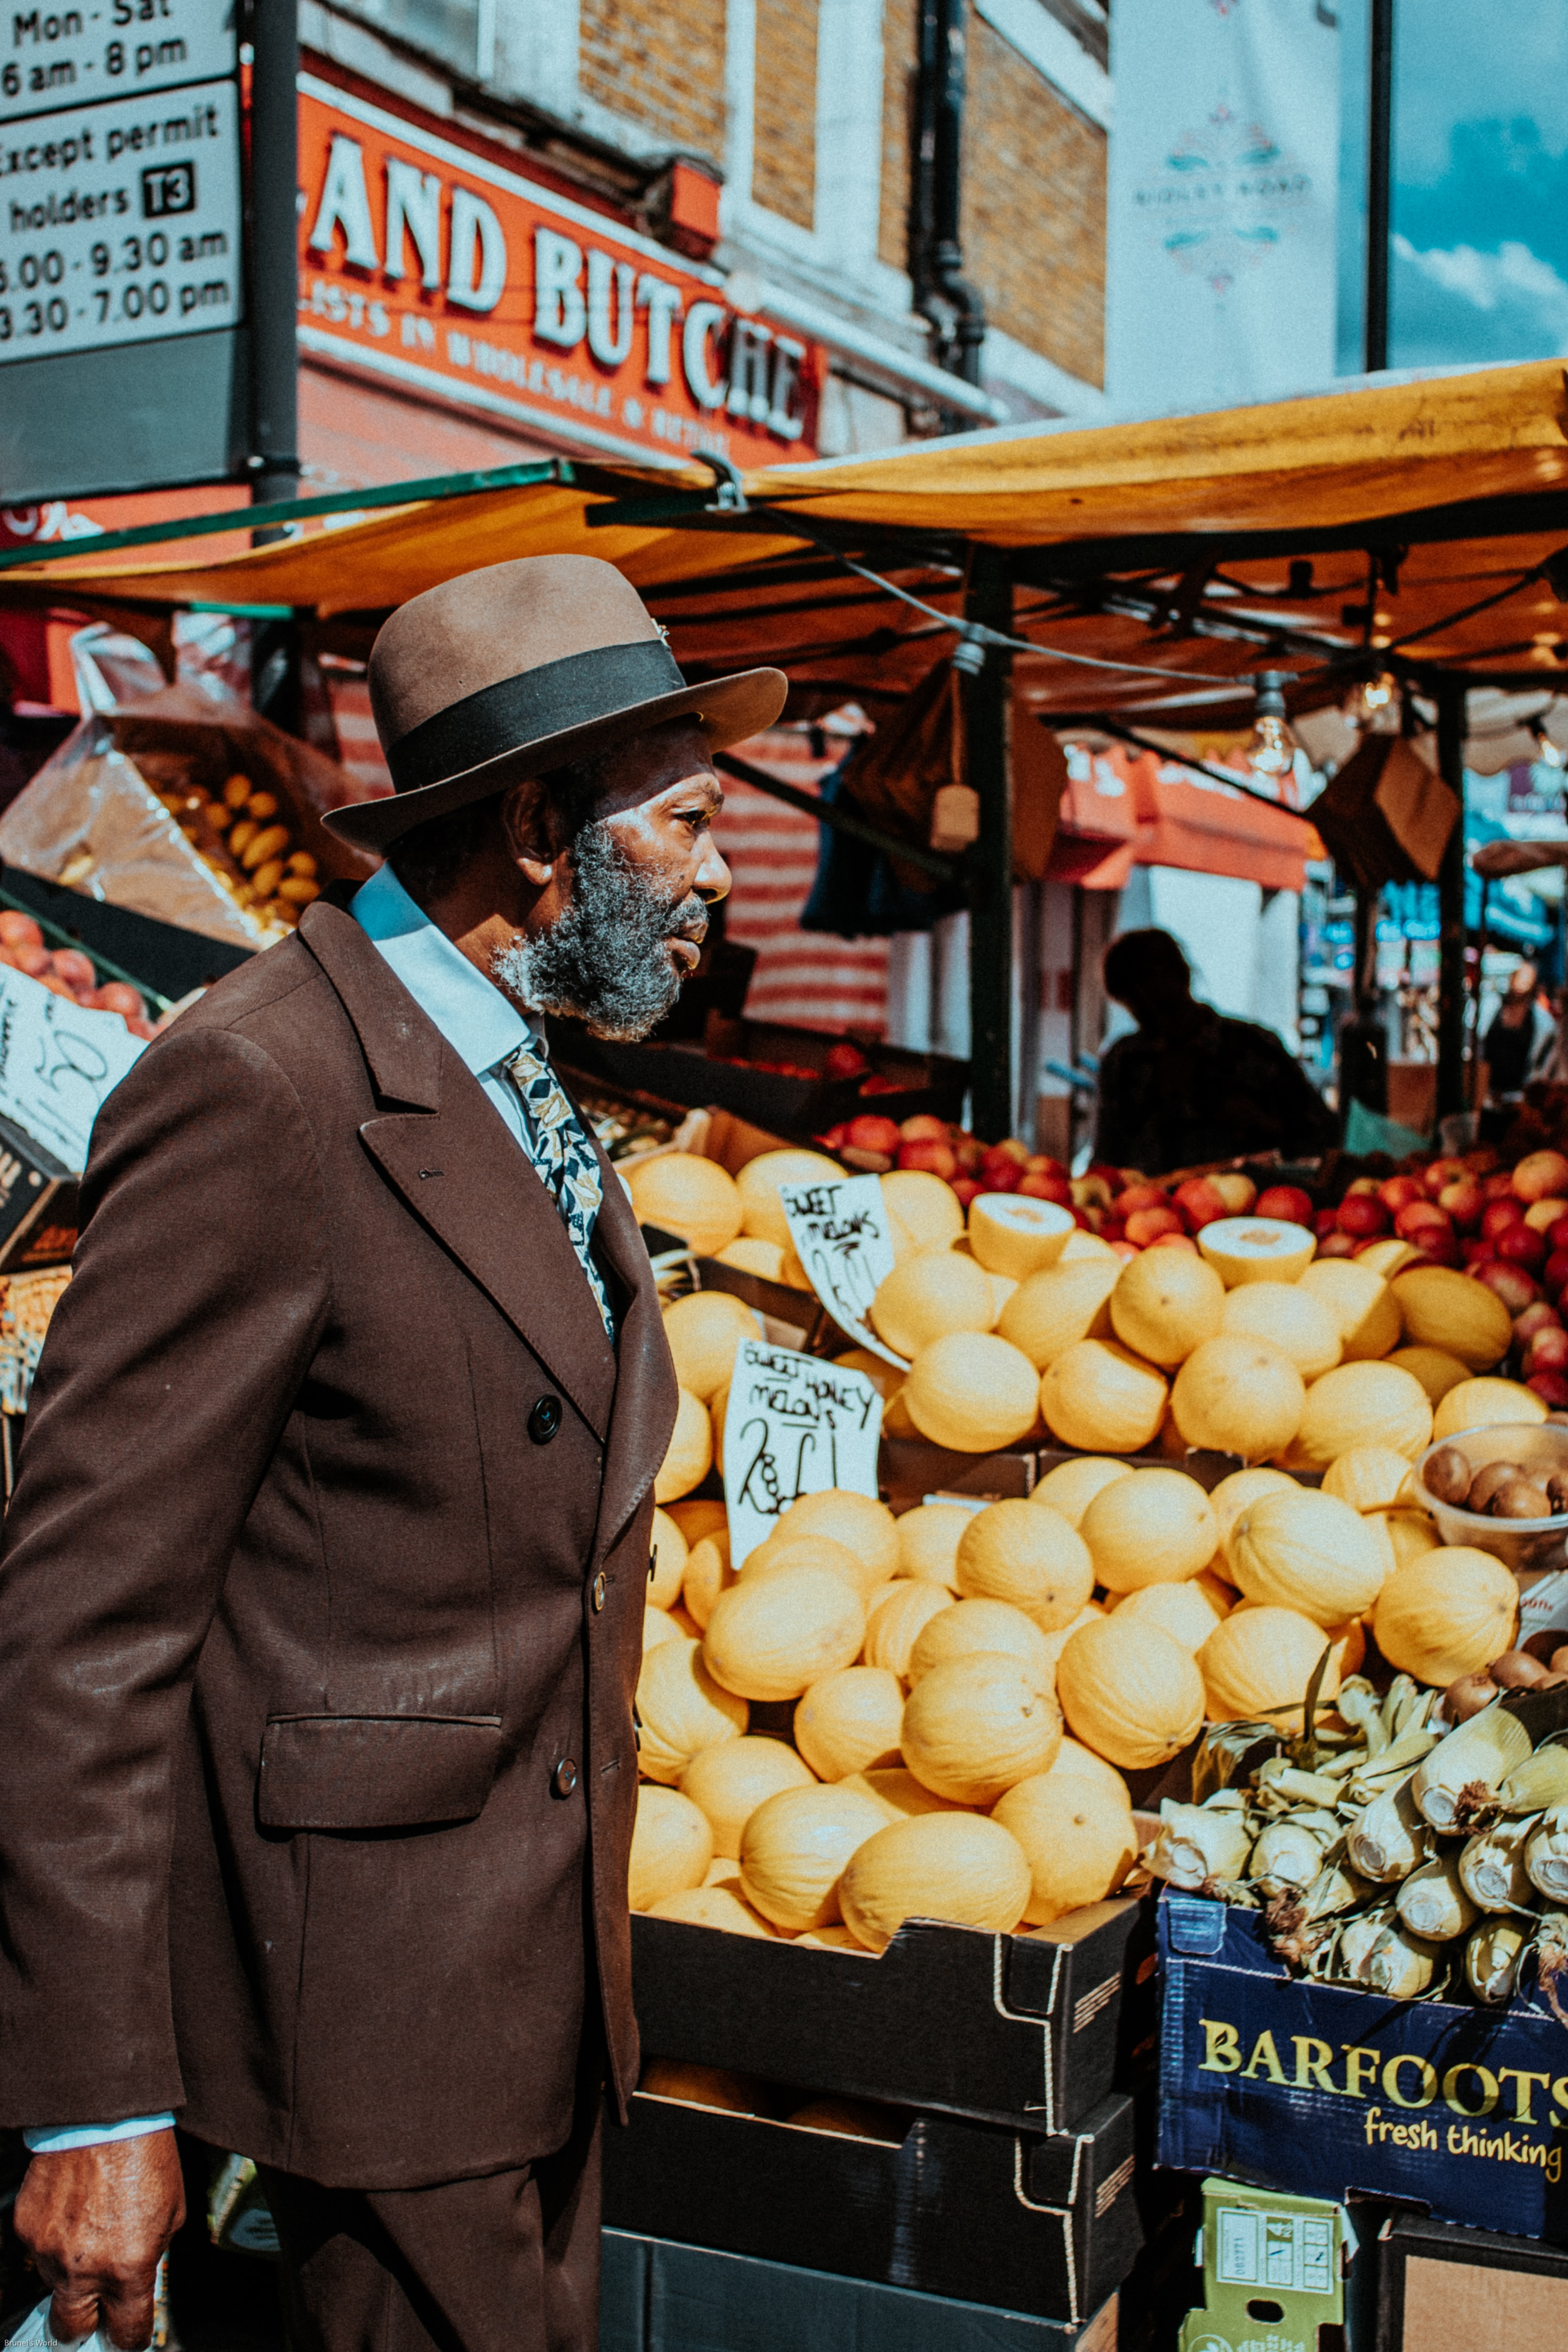 man in brown blazer standing on front of fruit displays near building